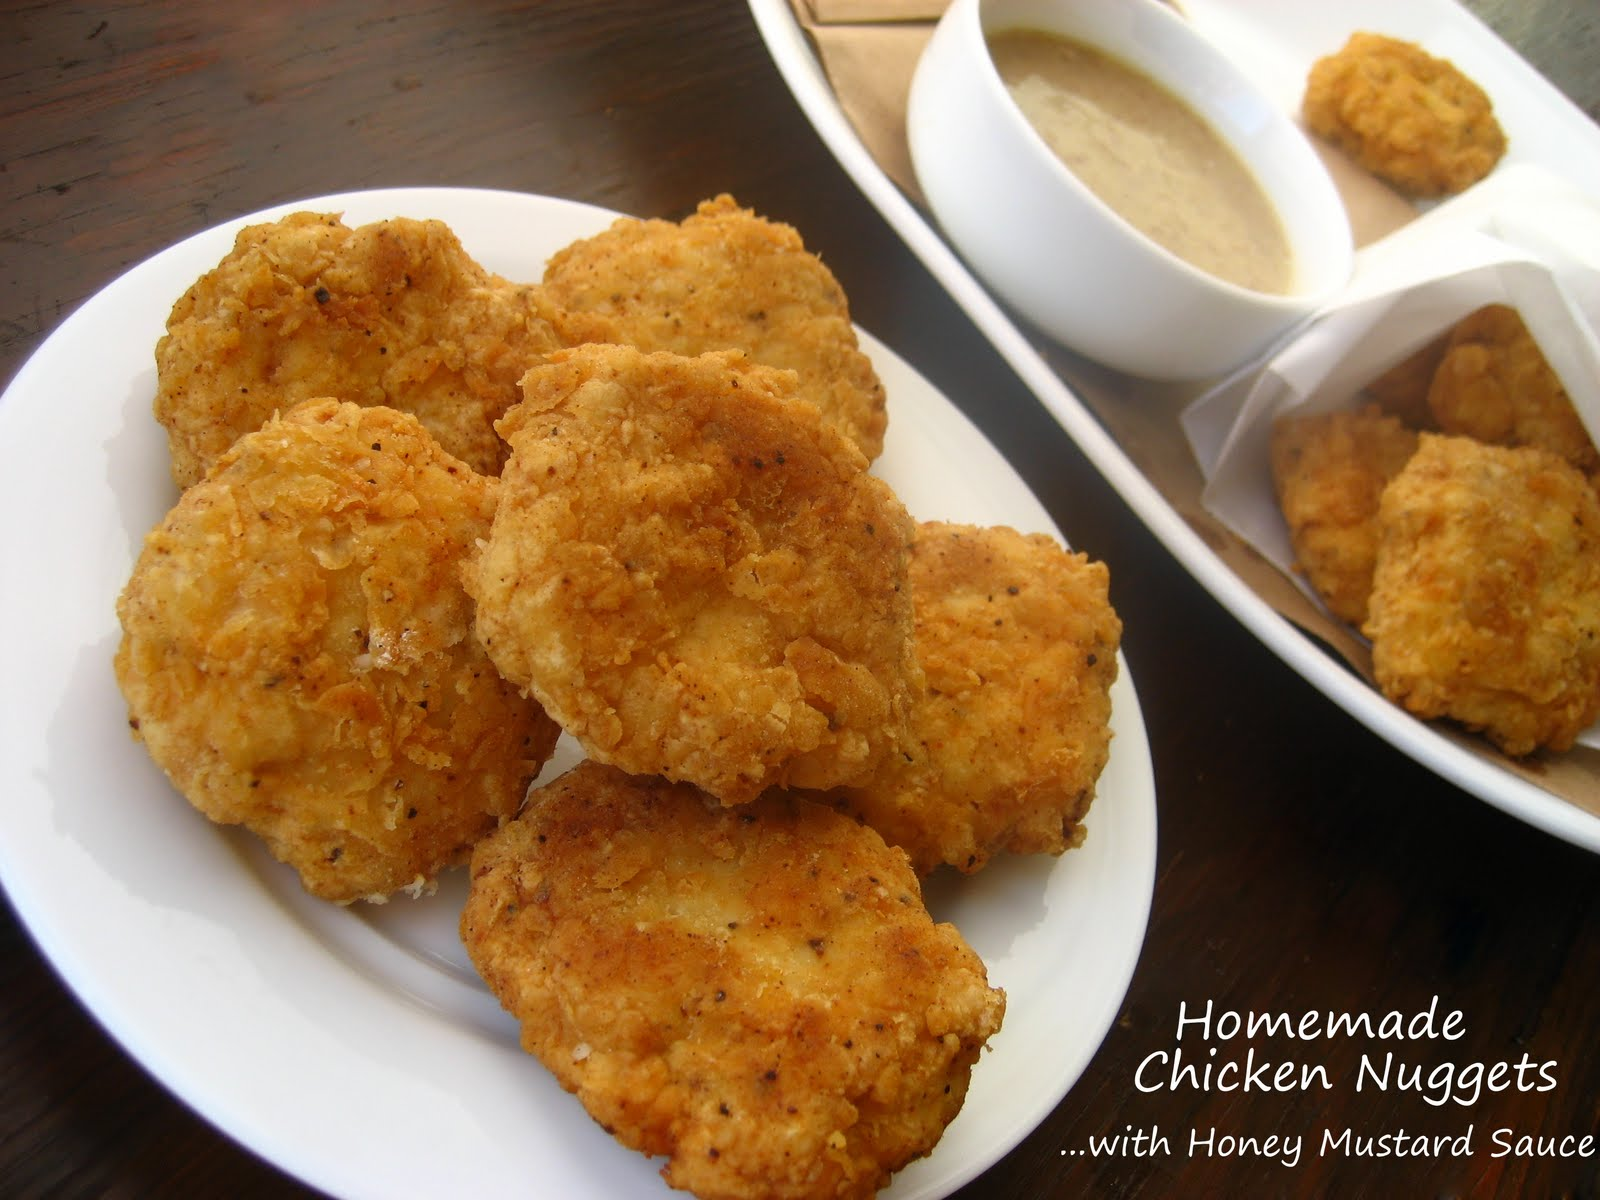 Home Cooking In Montana: Homemade Chicken Nuggets...with Honey Mustard ...